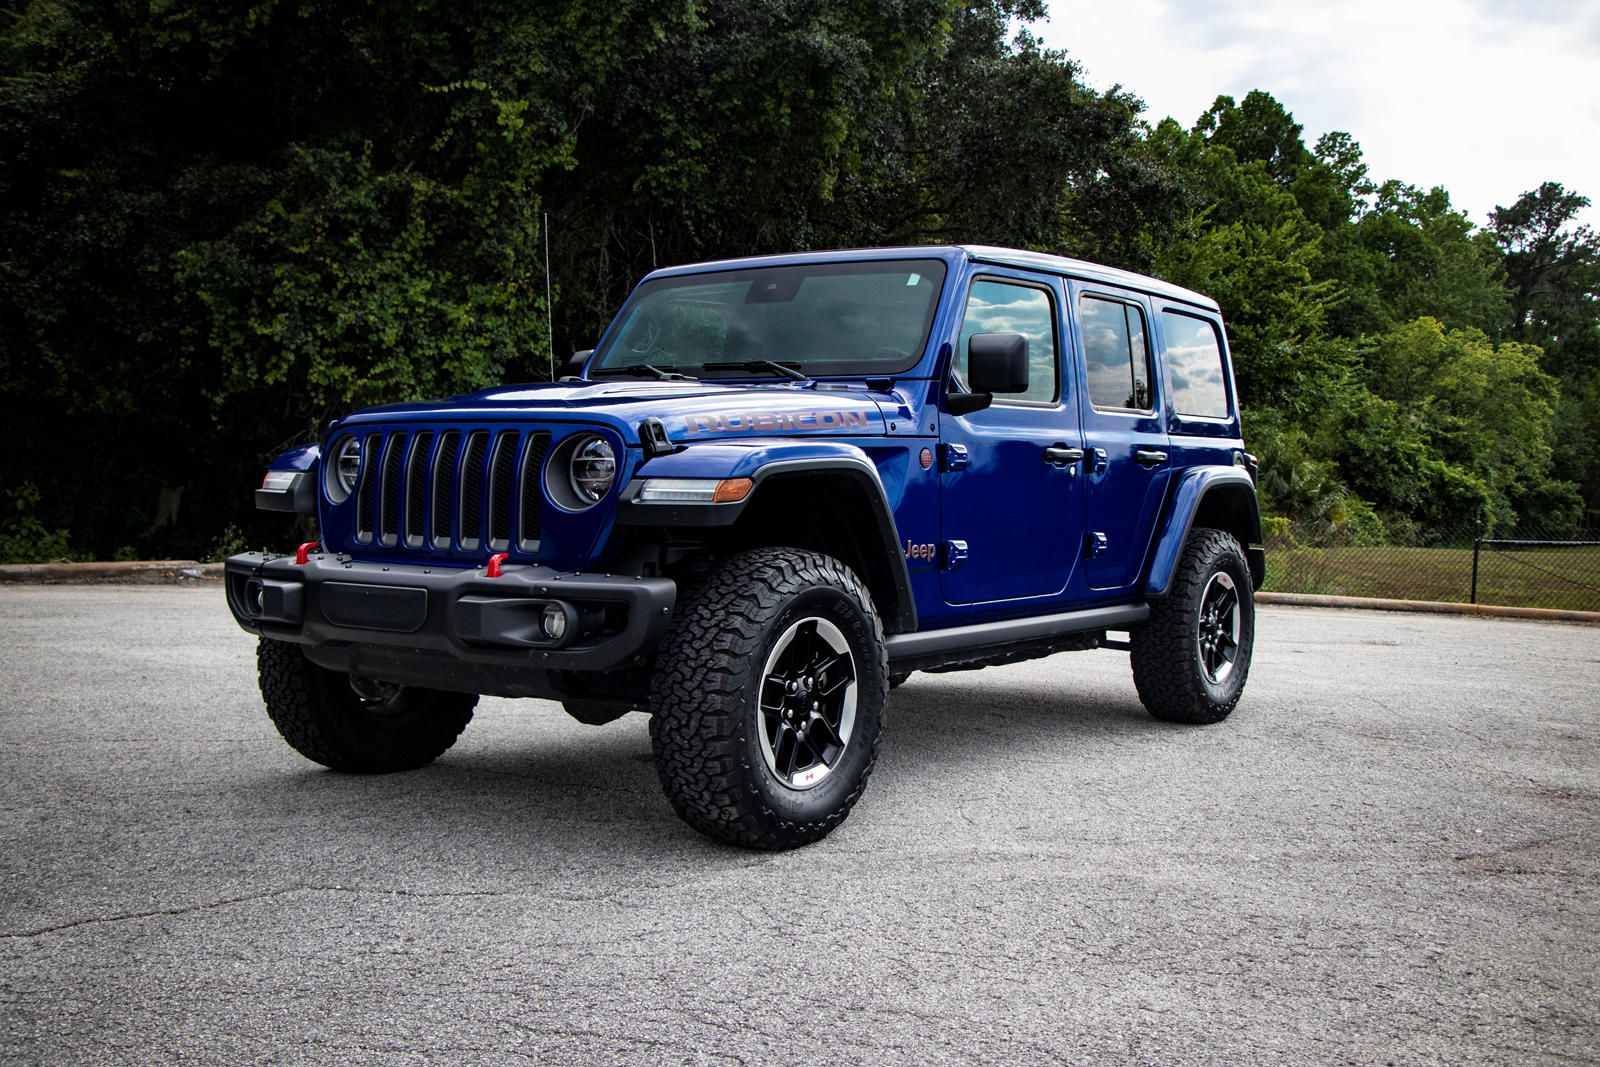 2020 Jeep Wrangler Unlimited Test Drive Review An